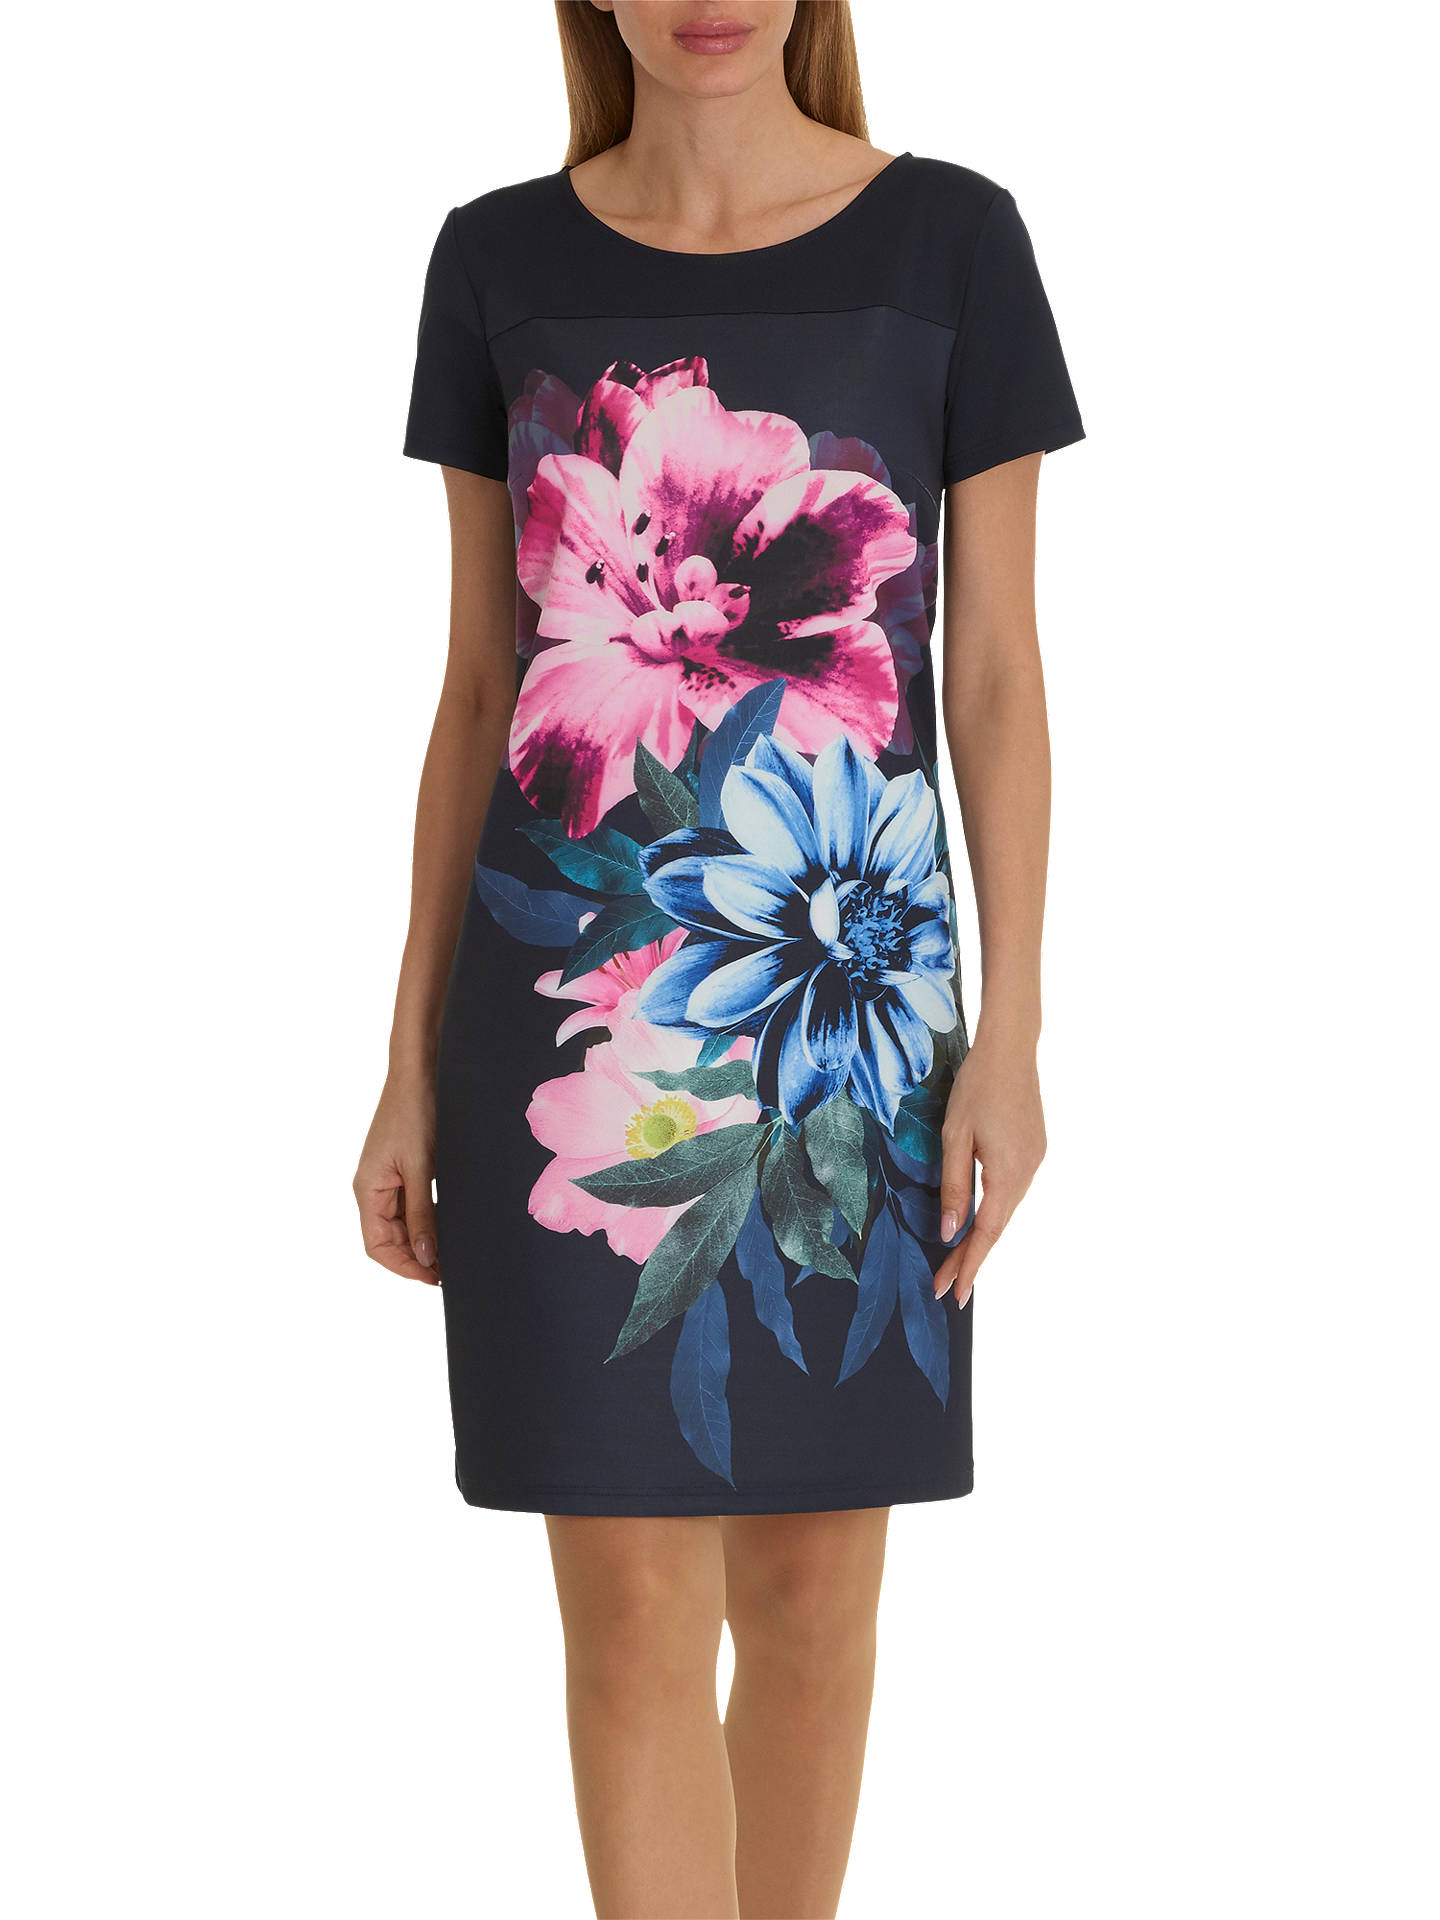 bbcdf6a9a155 Buy Betty Barclay Floral Print Jersey Dress